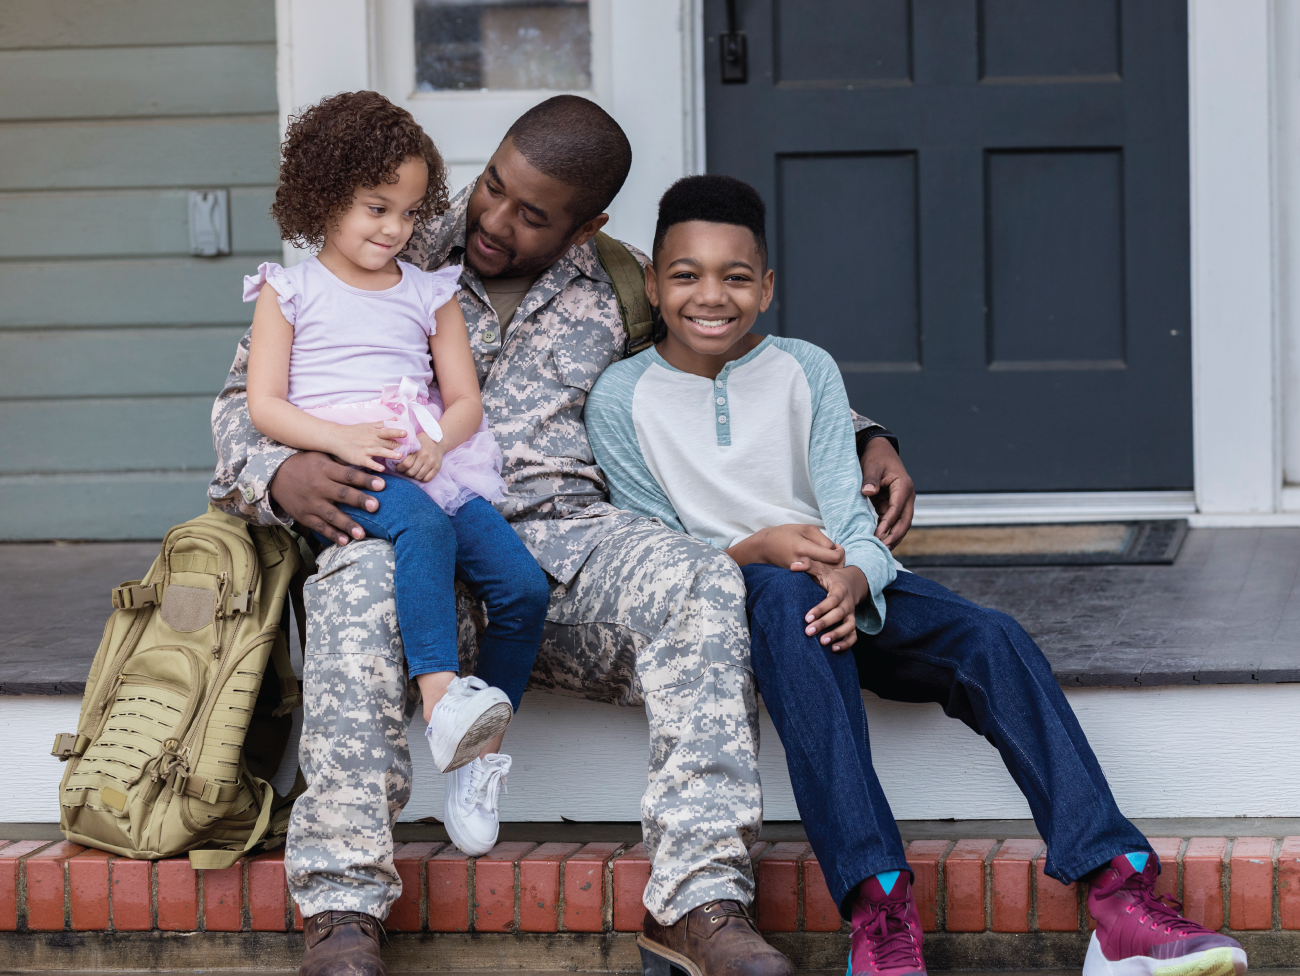 man wearing camouflage military fatigues seated on porch with 2 young children